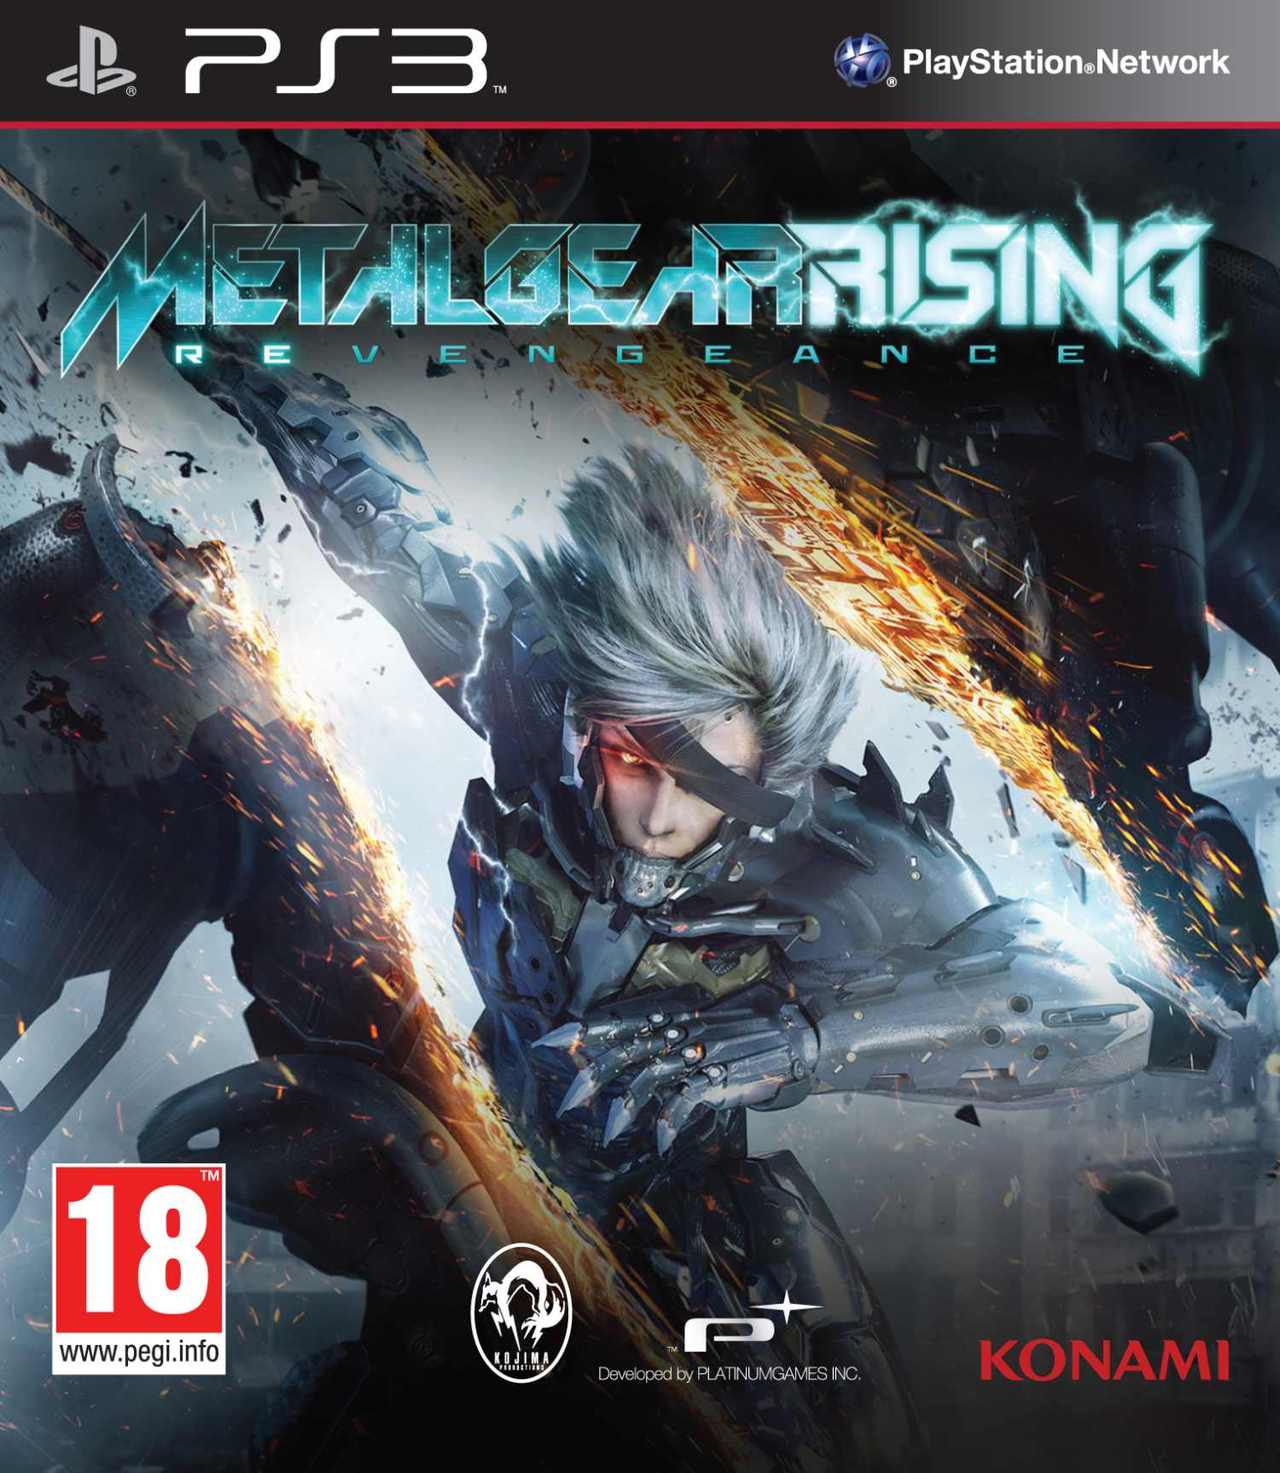 jaquette-metal-gear-rising-revengeance-playstation-3-ps3-cover-avant-g-1357224486.jpg